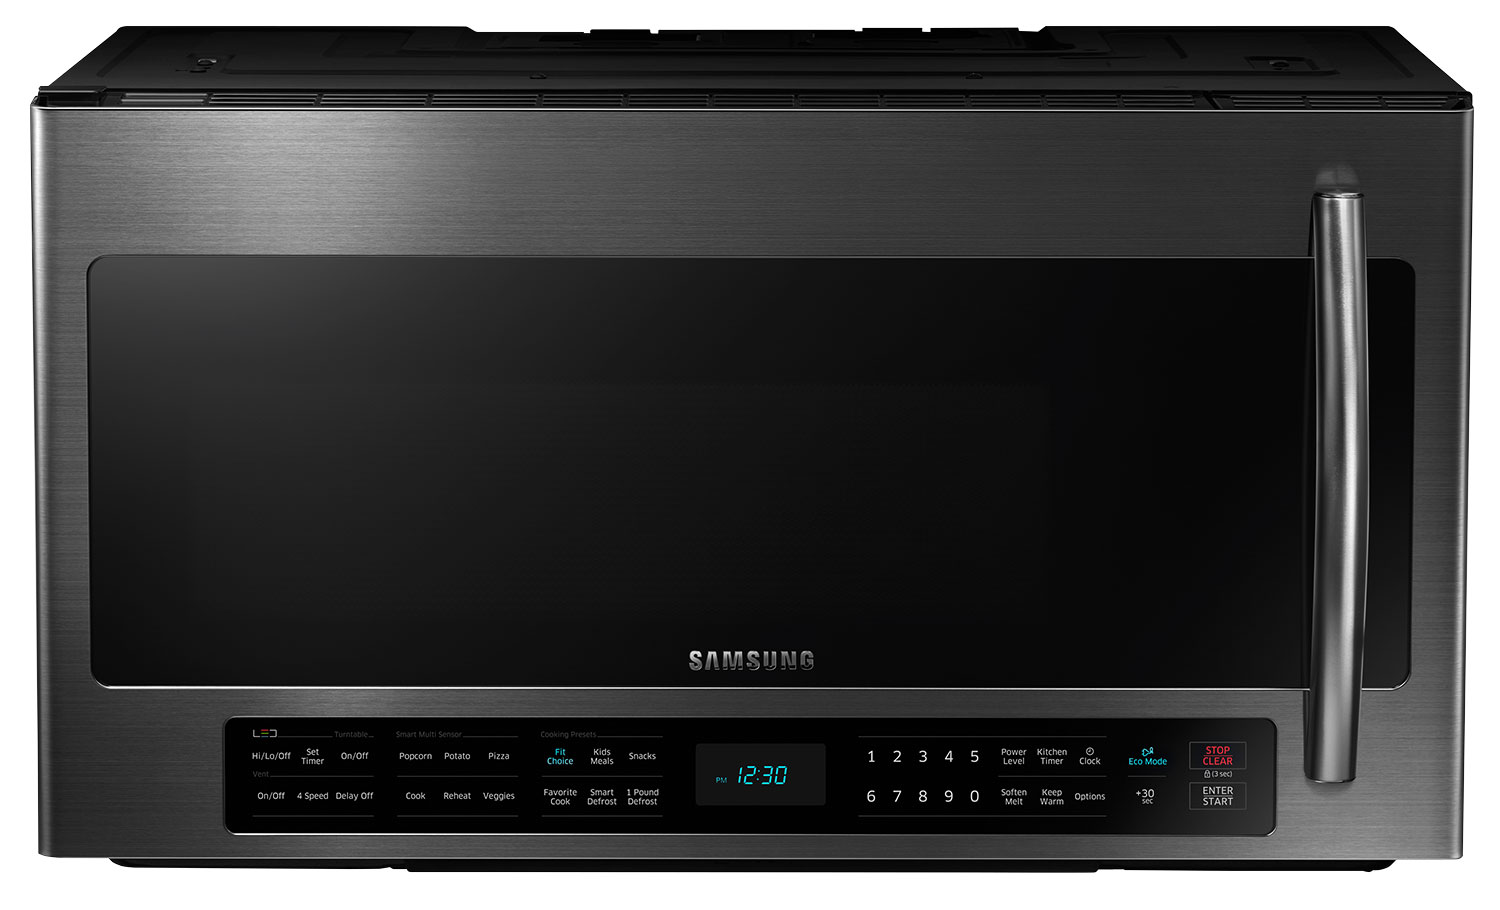 Samsung 2.1 Cu. Ft. Over-the-Range Microwave – ME21H706MQG